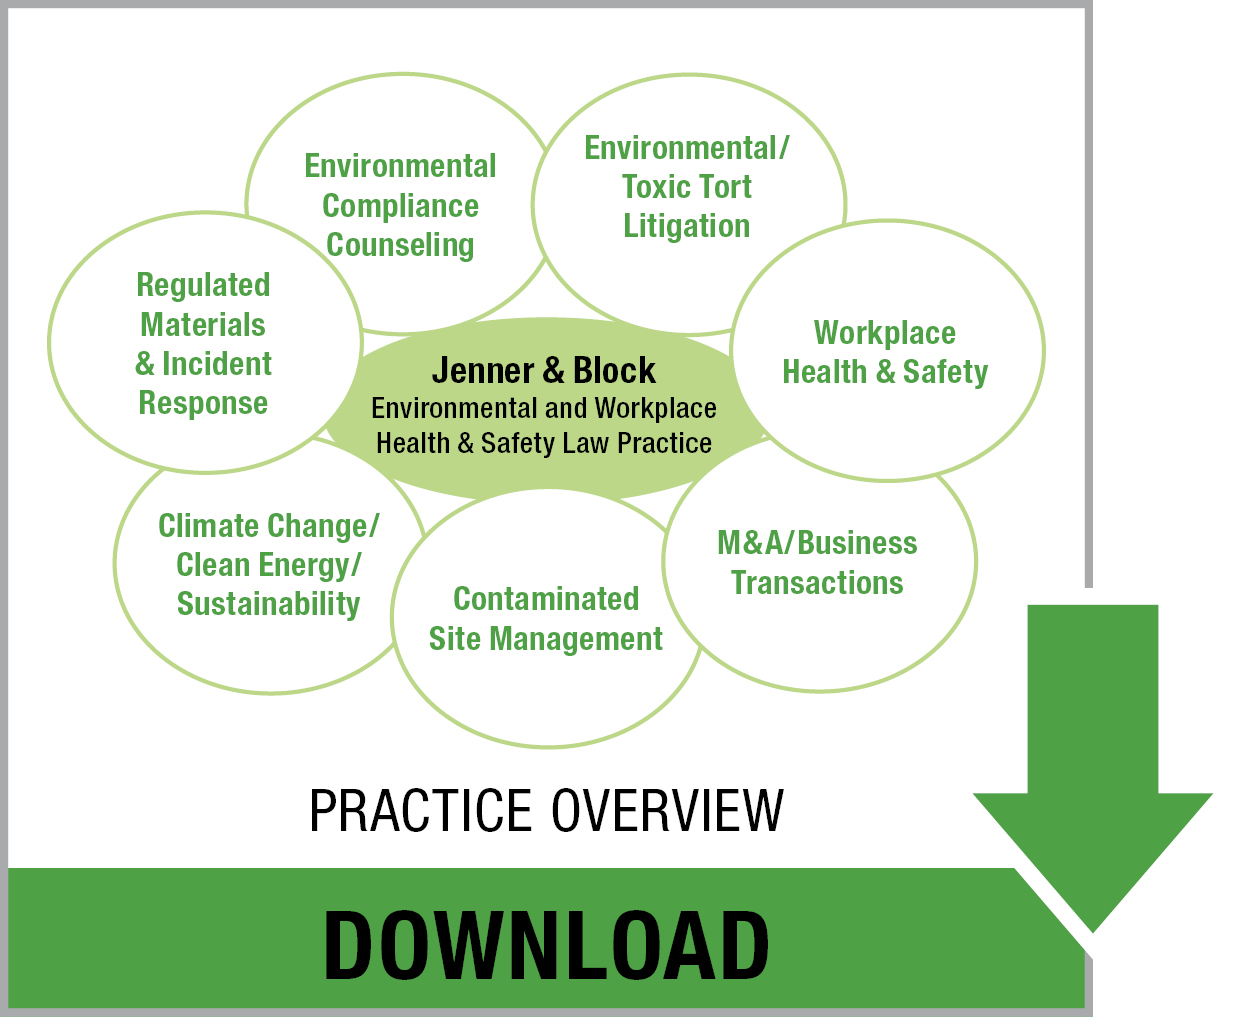 Law office management - Download The Ehs Practice Overview Brochure